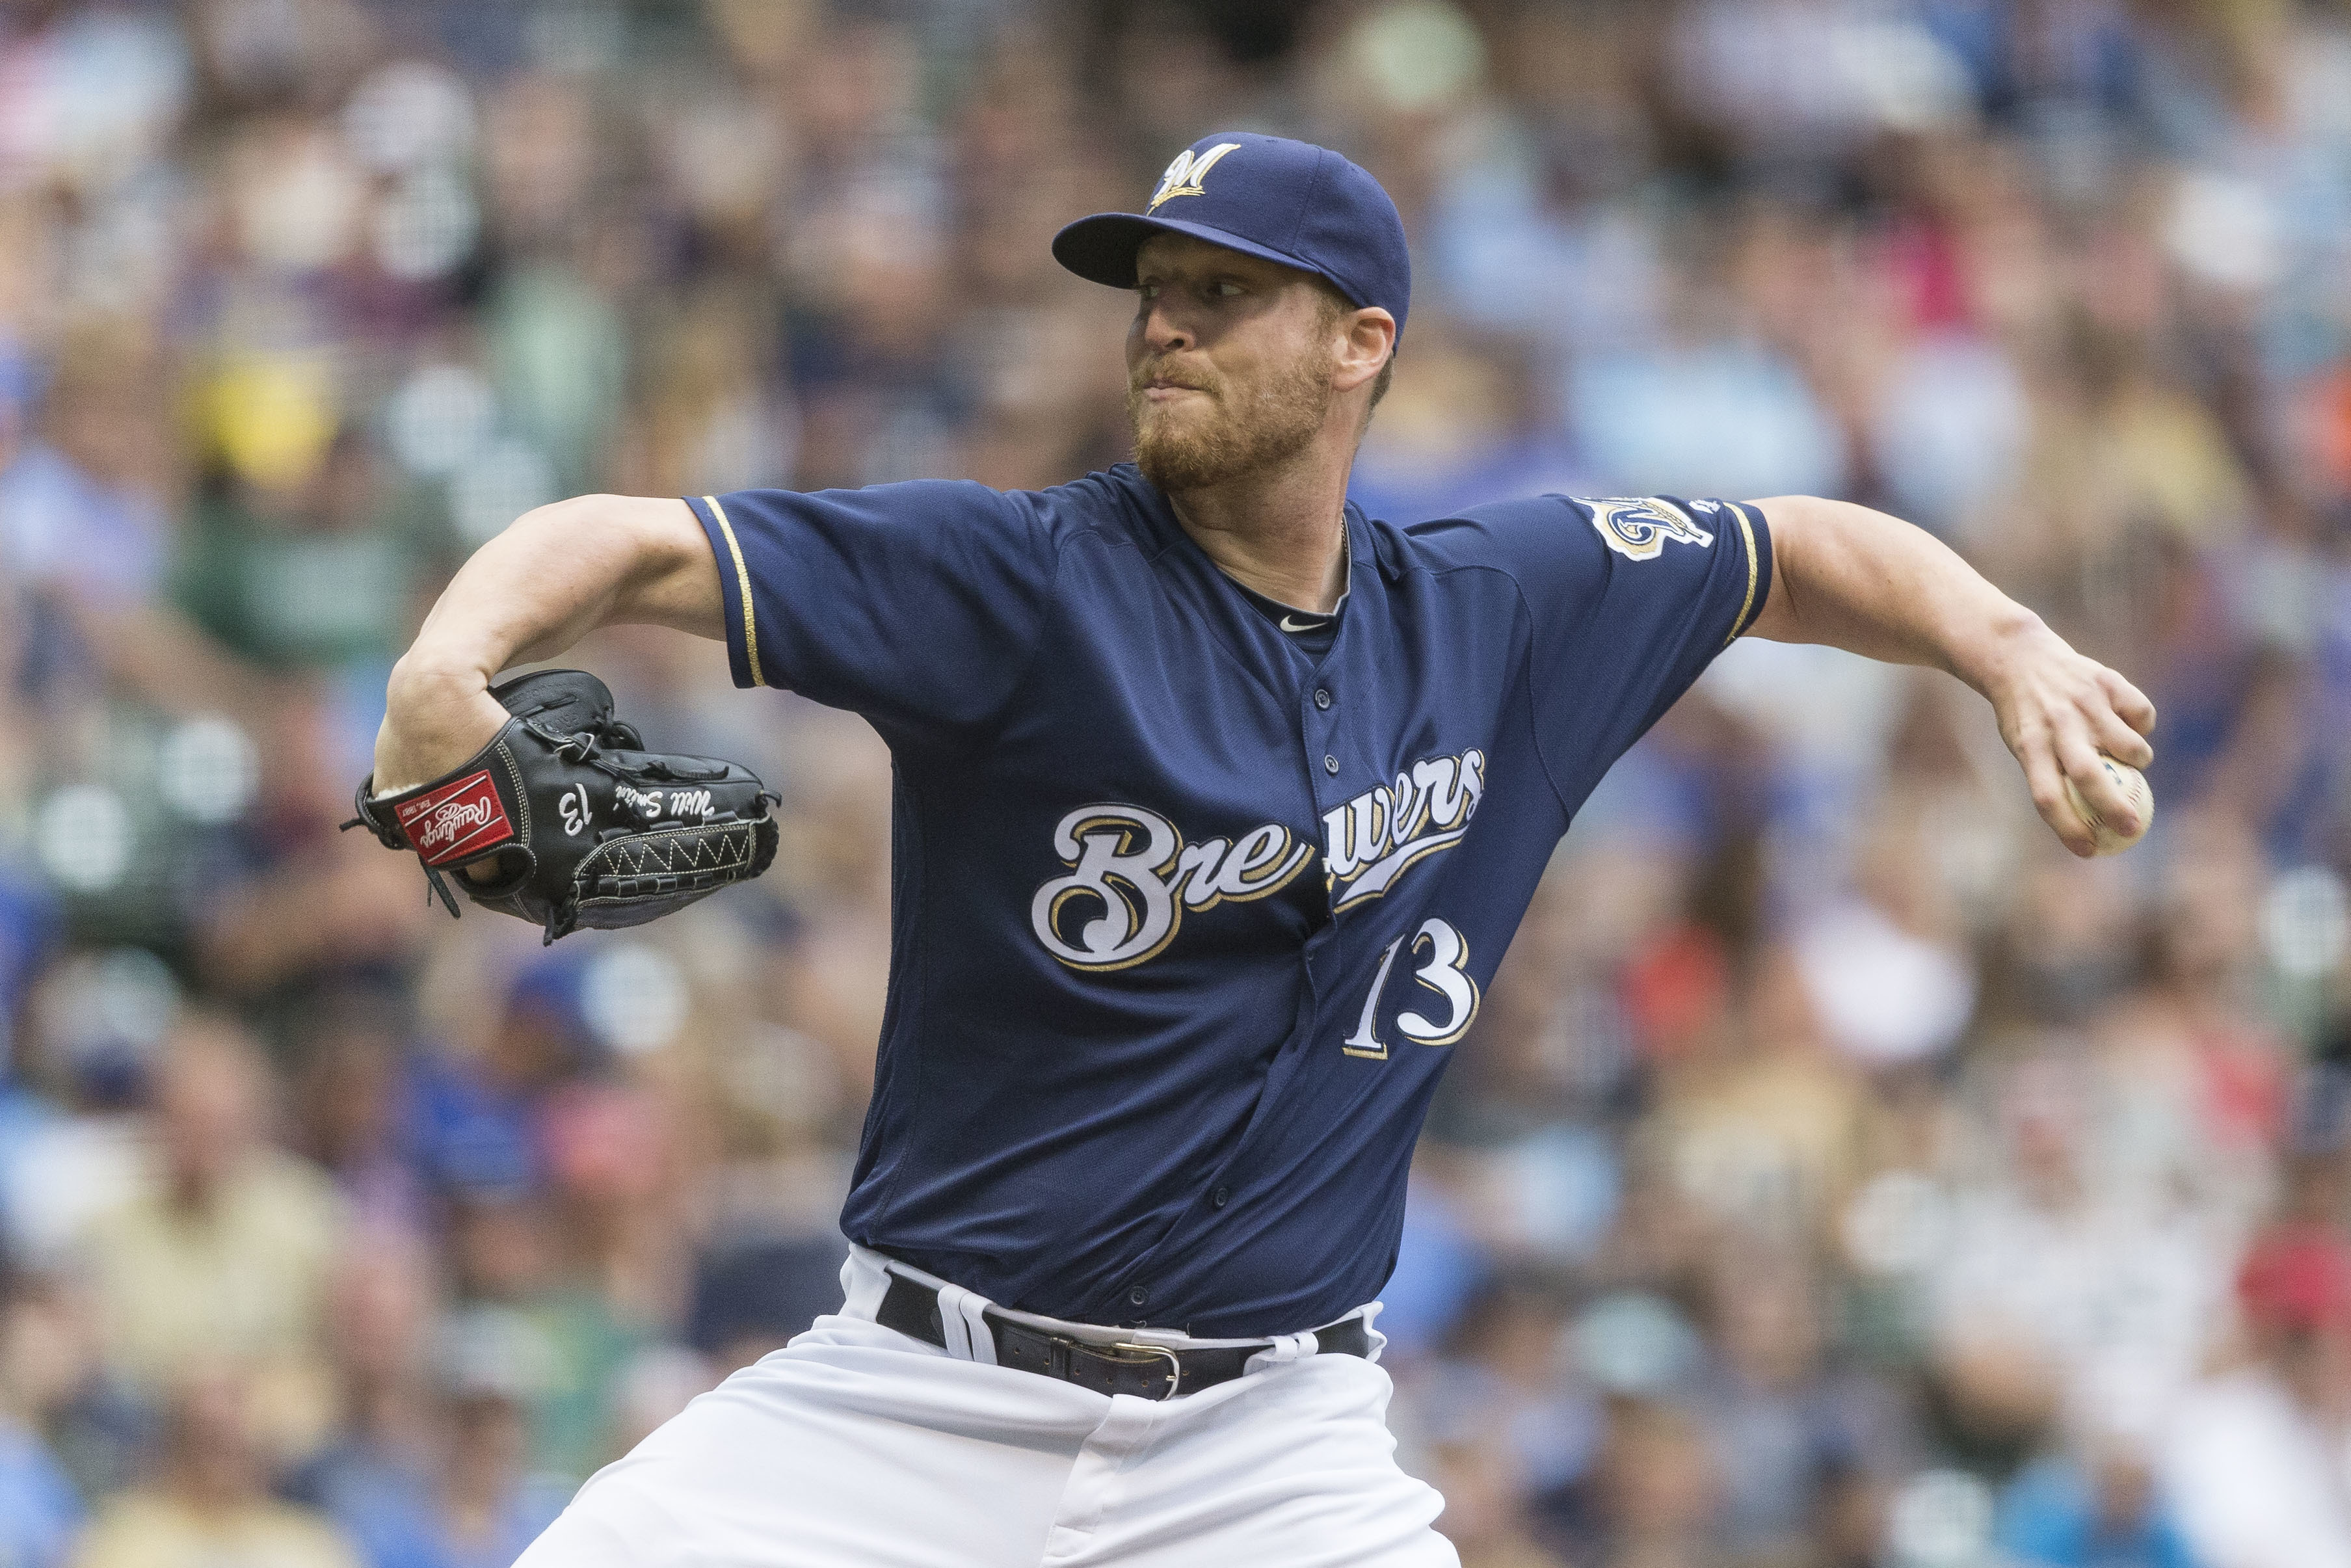 FILe - In this July 28, 2016, file photo, Milwaukee Brewers' Will Smith pitches to an Arizona Diamondbacks' batter during the seventh inning of a baseball game, in Milwaukee. A person with knowledge of the trade says the San Francisco Giants have acquired